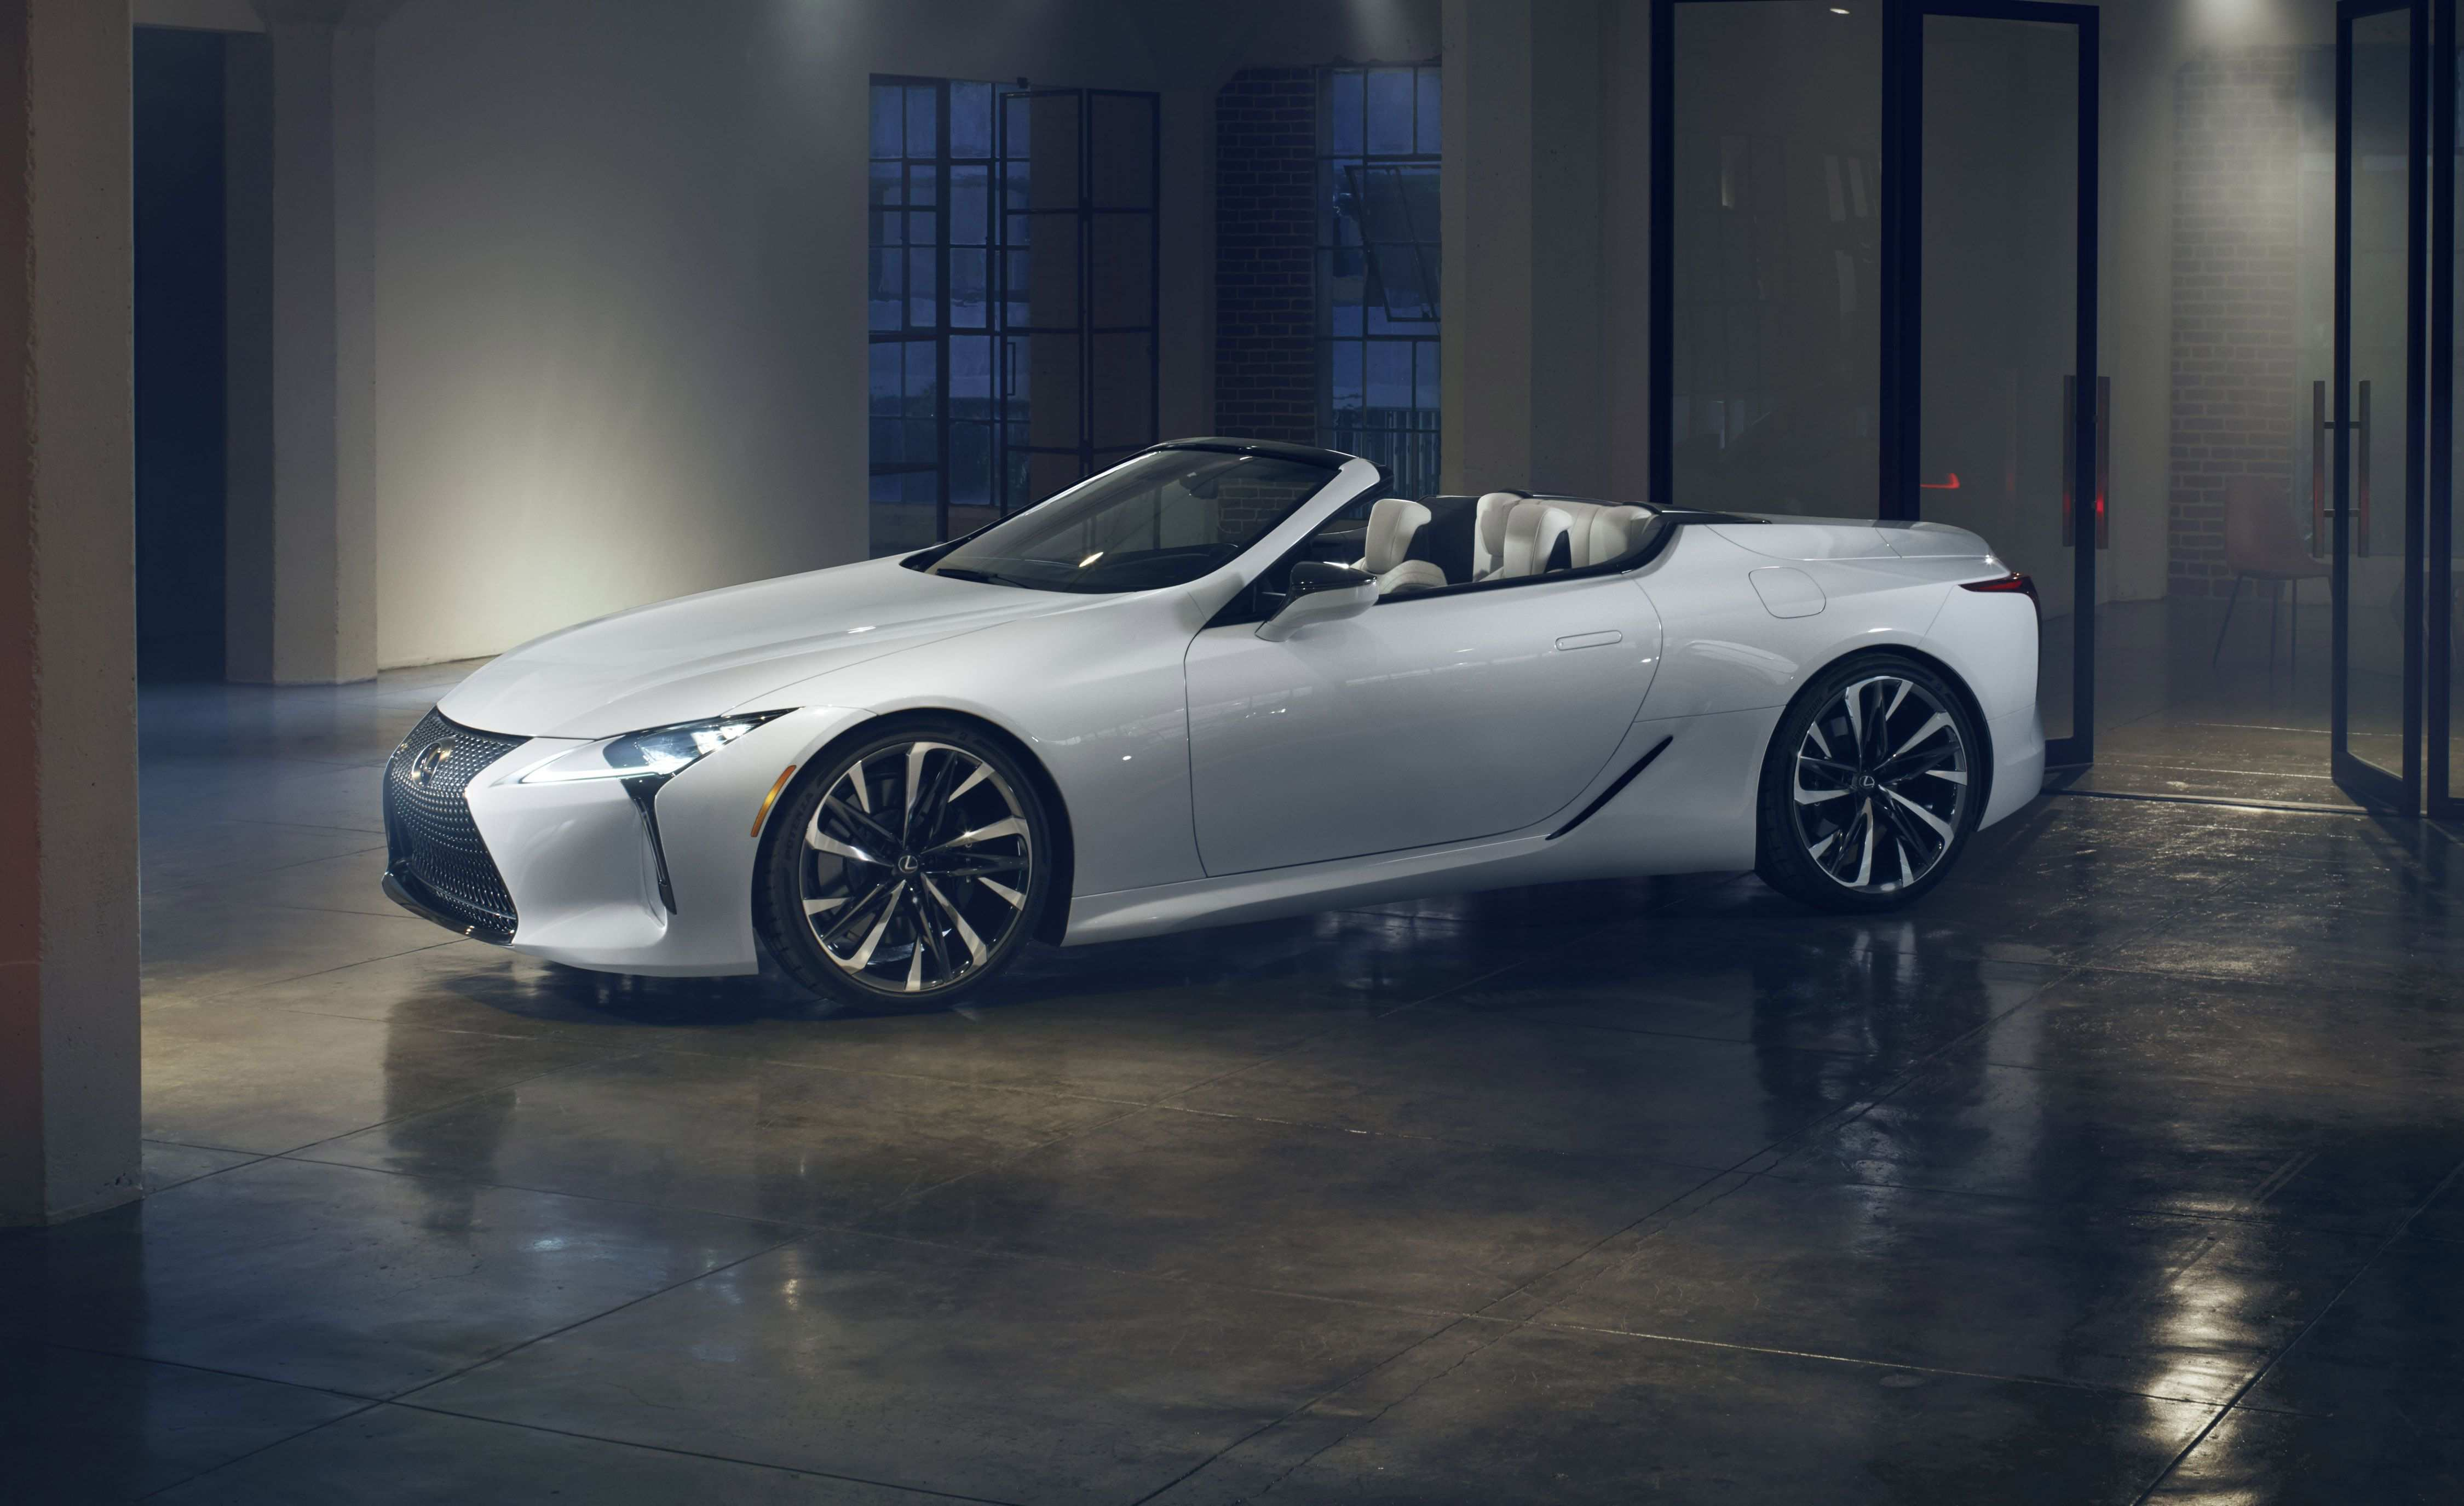 63 All New Lexus Convertible 2020 Configurations for Lexus Convertible 2020